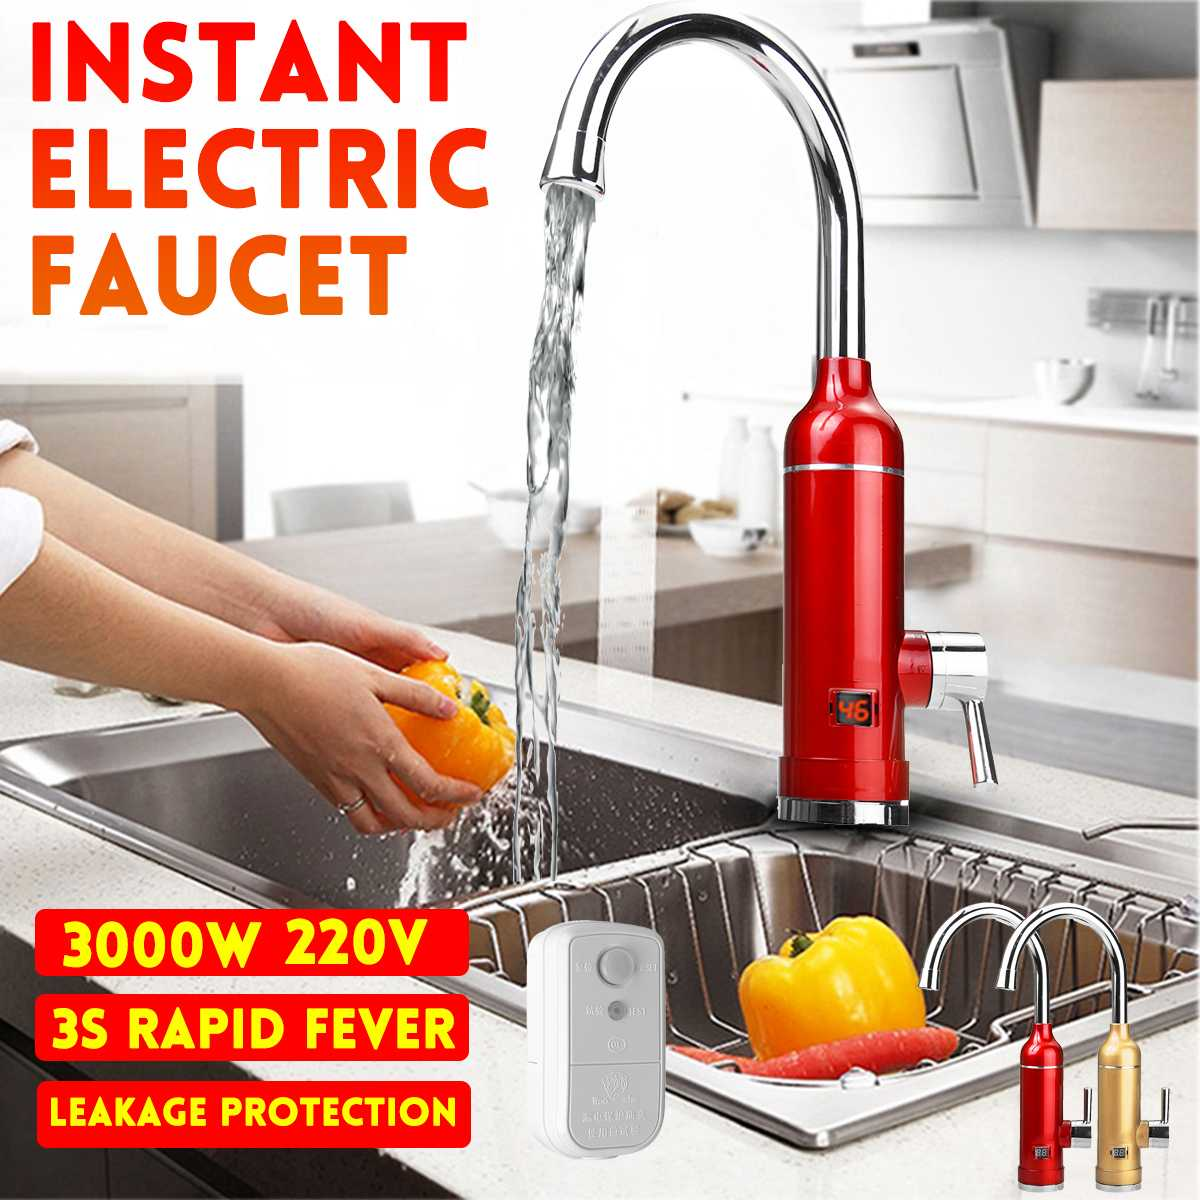 220V 3000W Electric Kitchen Water Heaters Tap Instant Hot Water Faucet Heaters Cold Heating Faucet Tankless Water Heaters